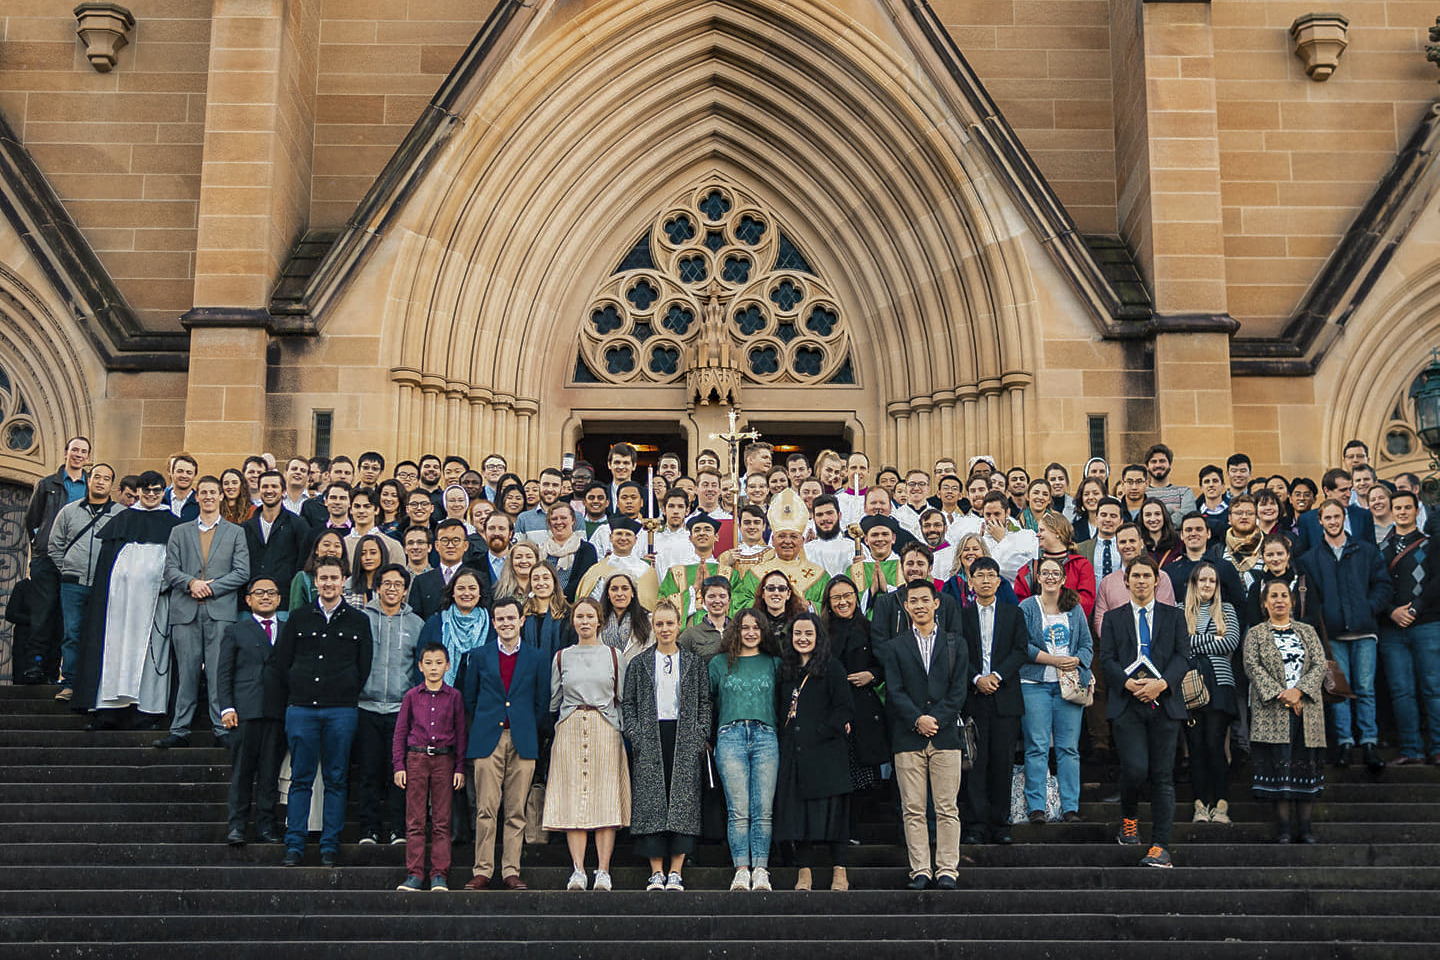 Attendees of the Australian Catholic Students Association (ACSA) at St Mary's Cathedral, Sydney. Photo: Supplied.